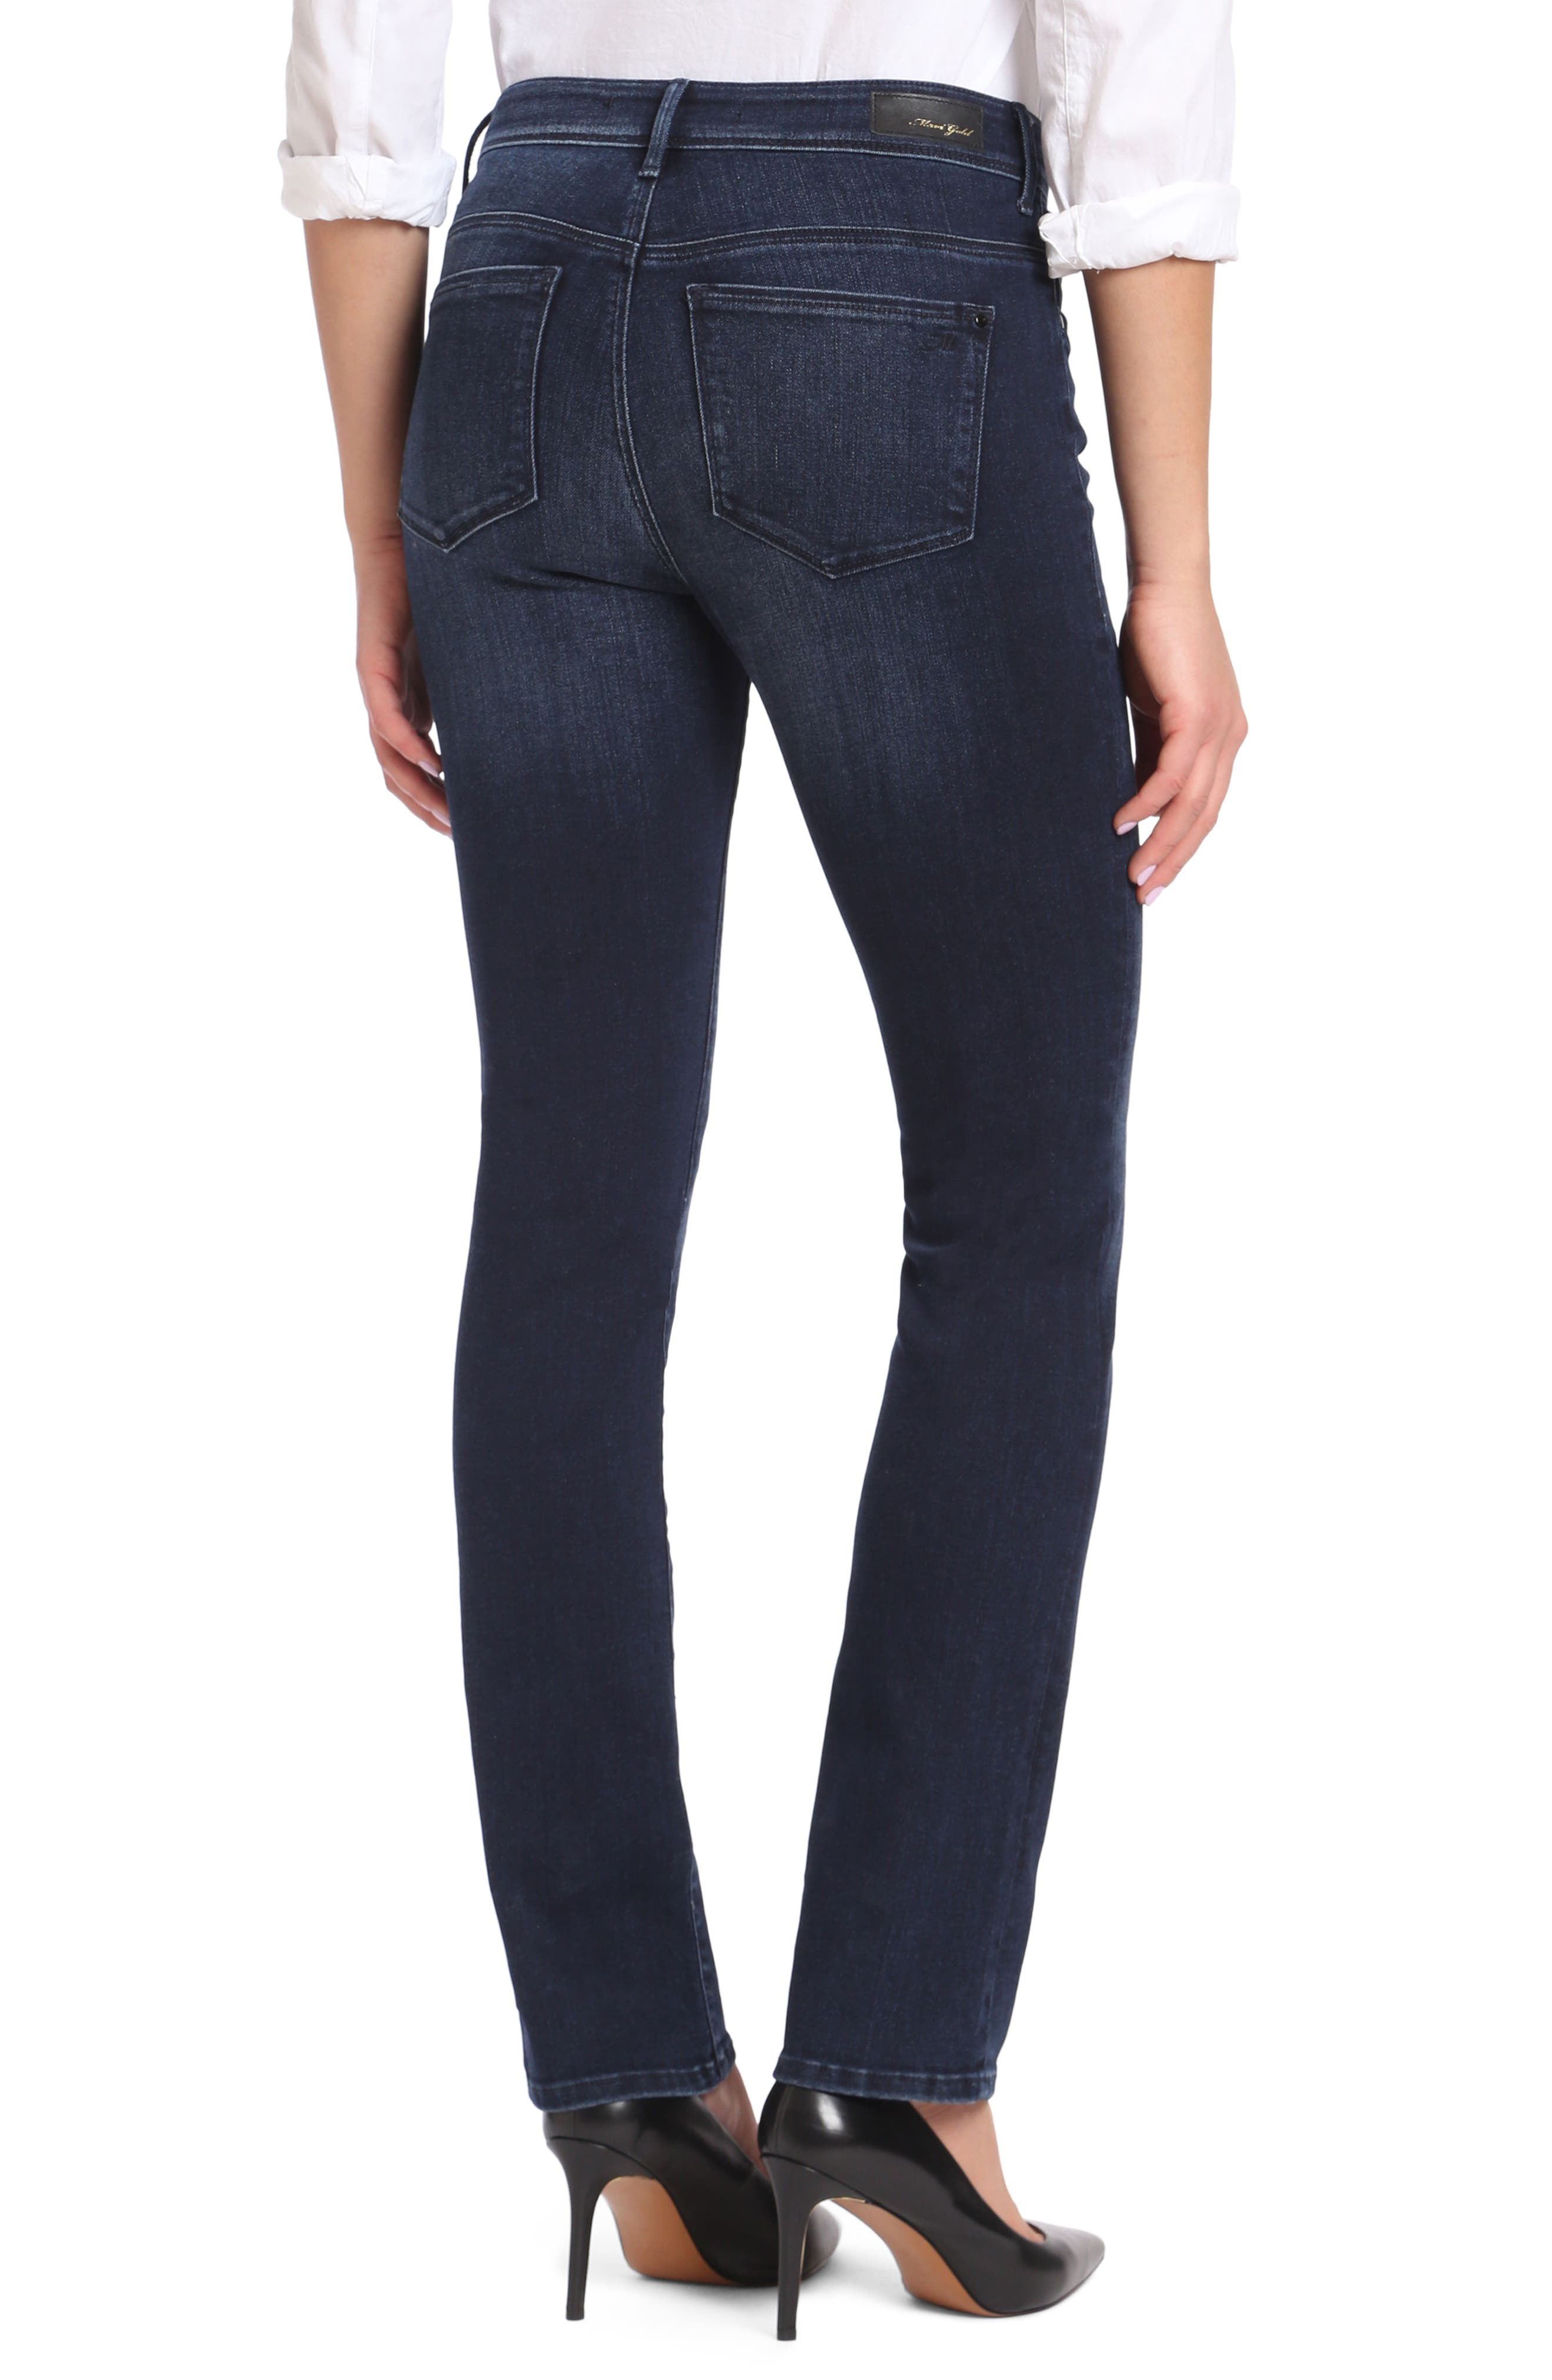 Kendra High Waist Straight Jeans,                             Alternate thumbnail 2, color,